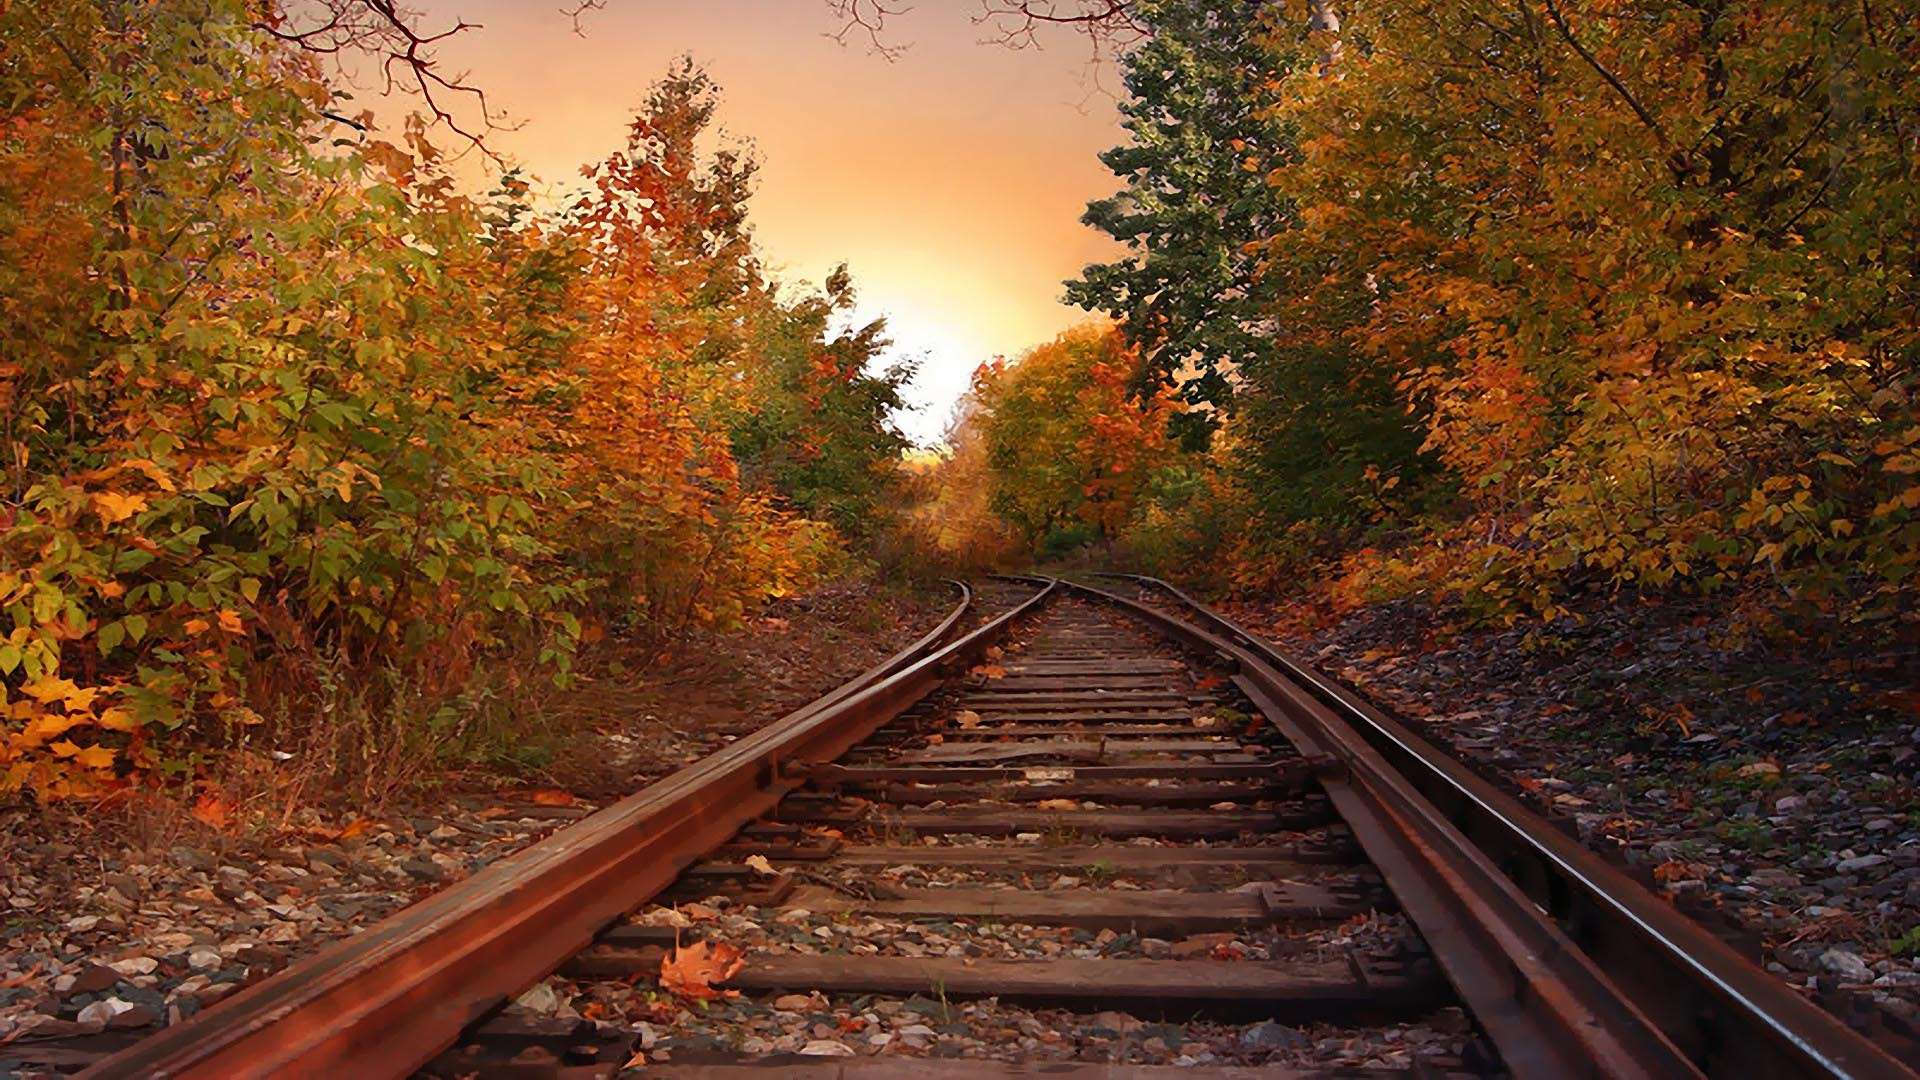 Railroad wallpapers pictures images - Track wallpaper hd ...